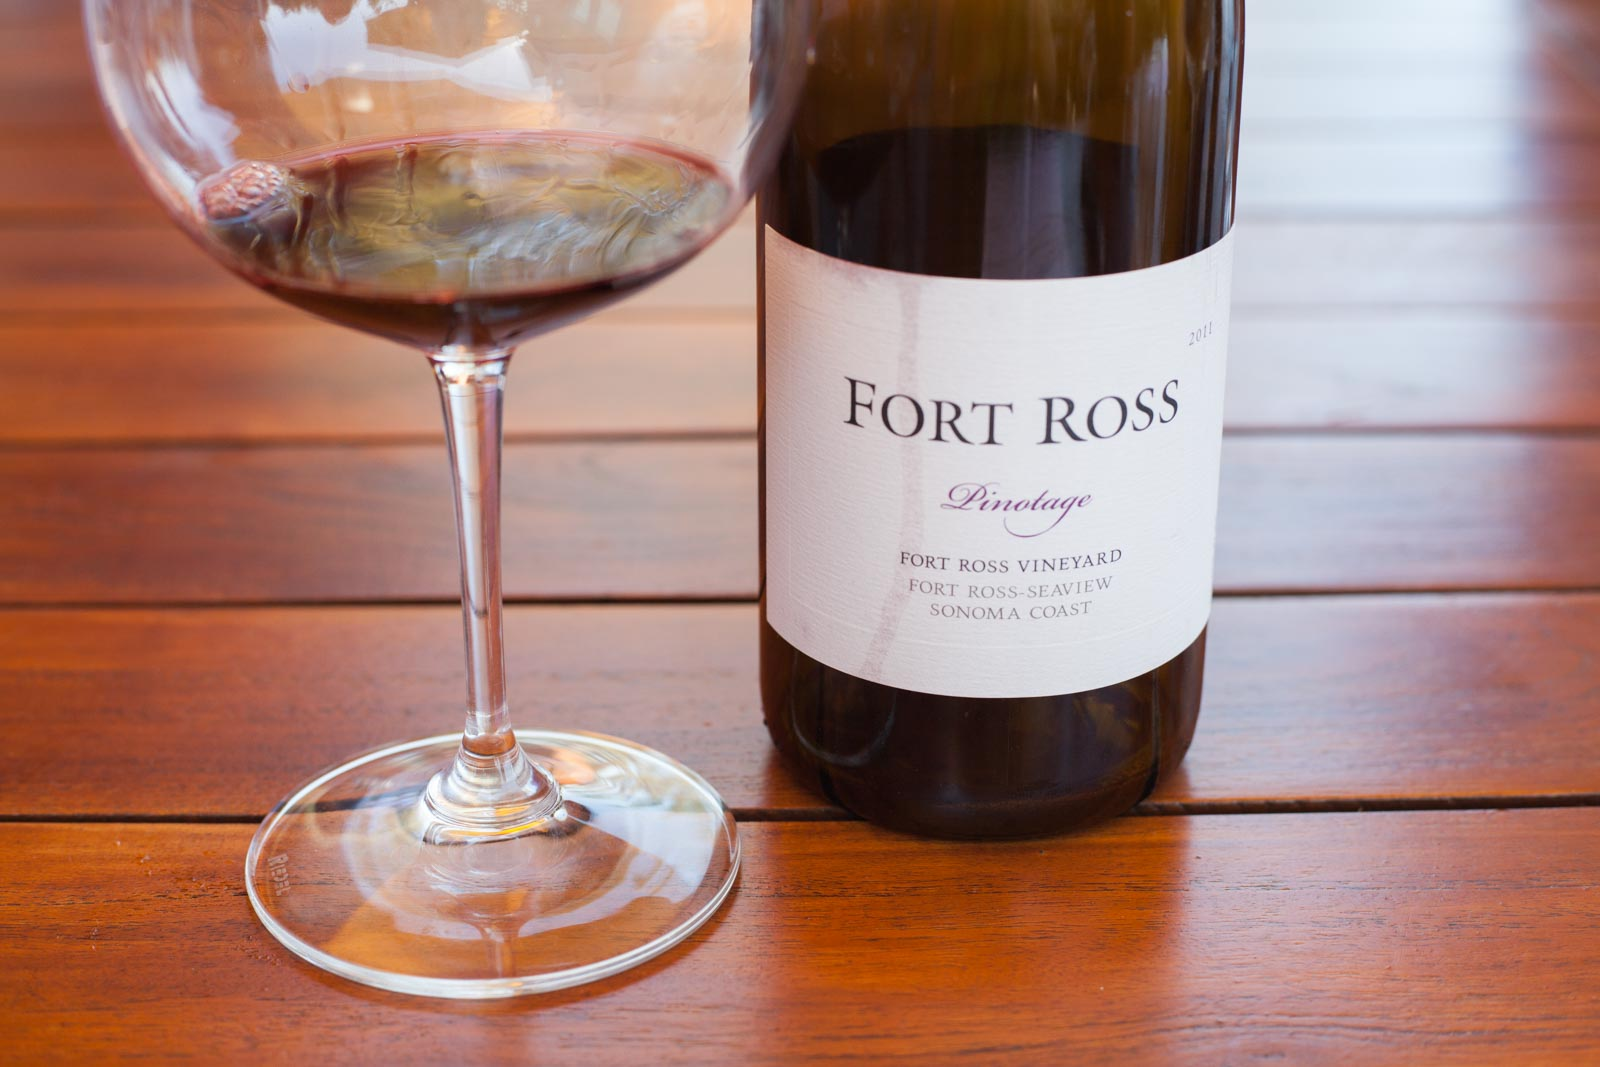 Fort Ross Pinotage ©Kevin Day/Opening a Bottle